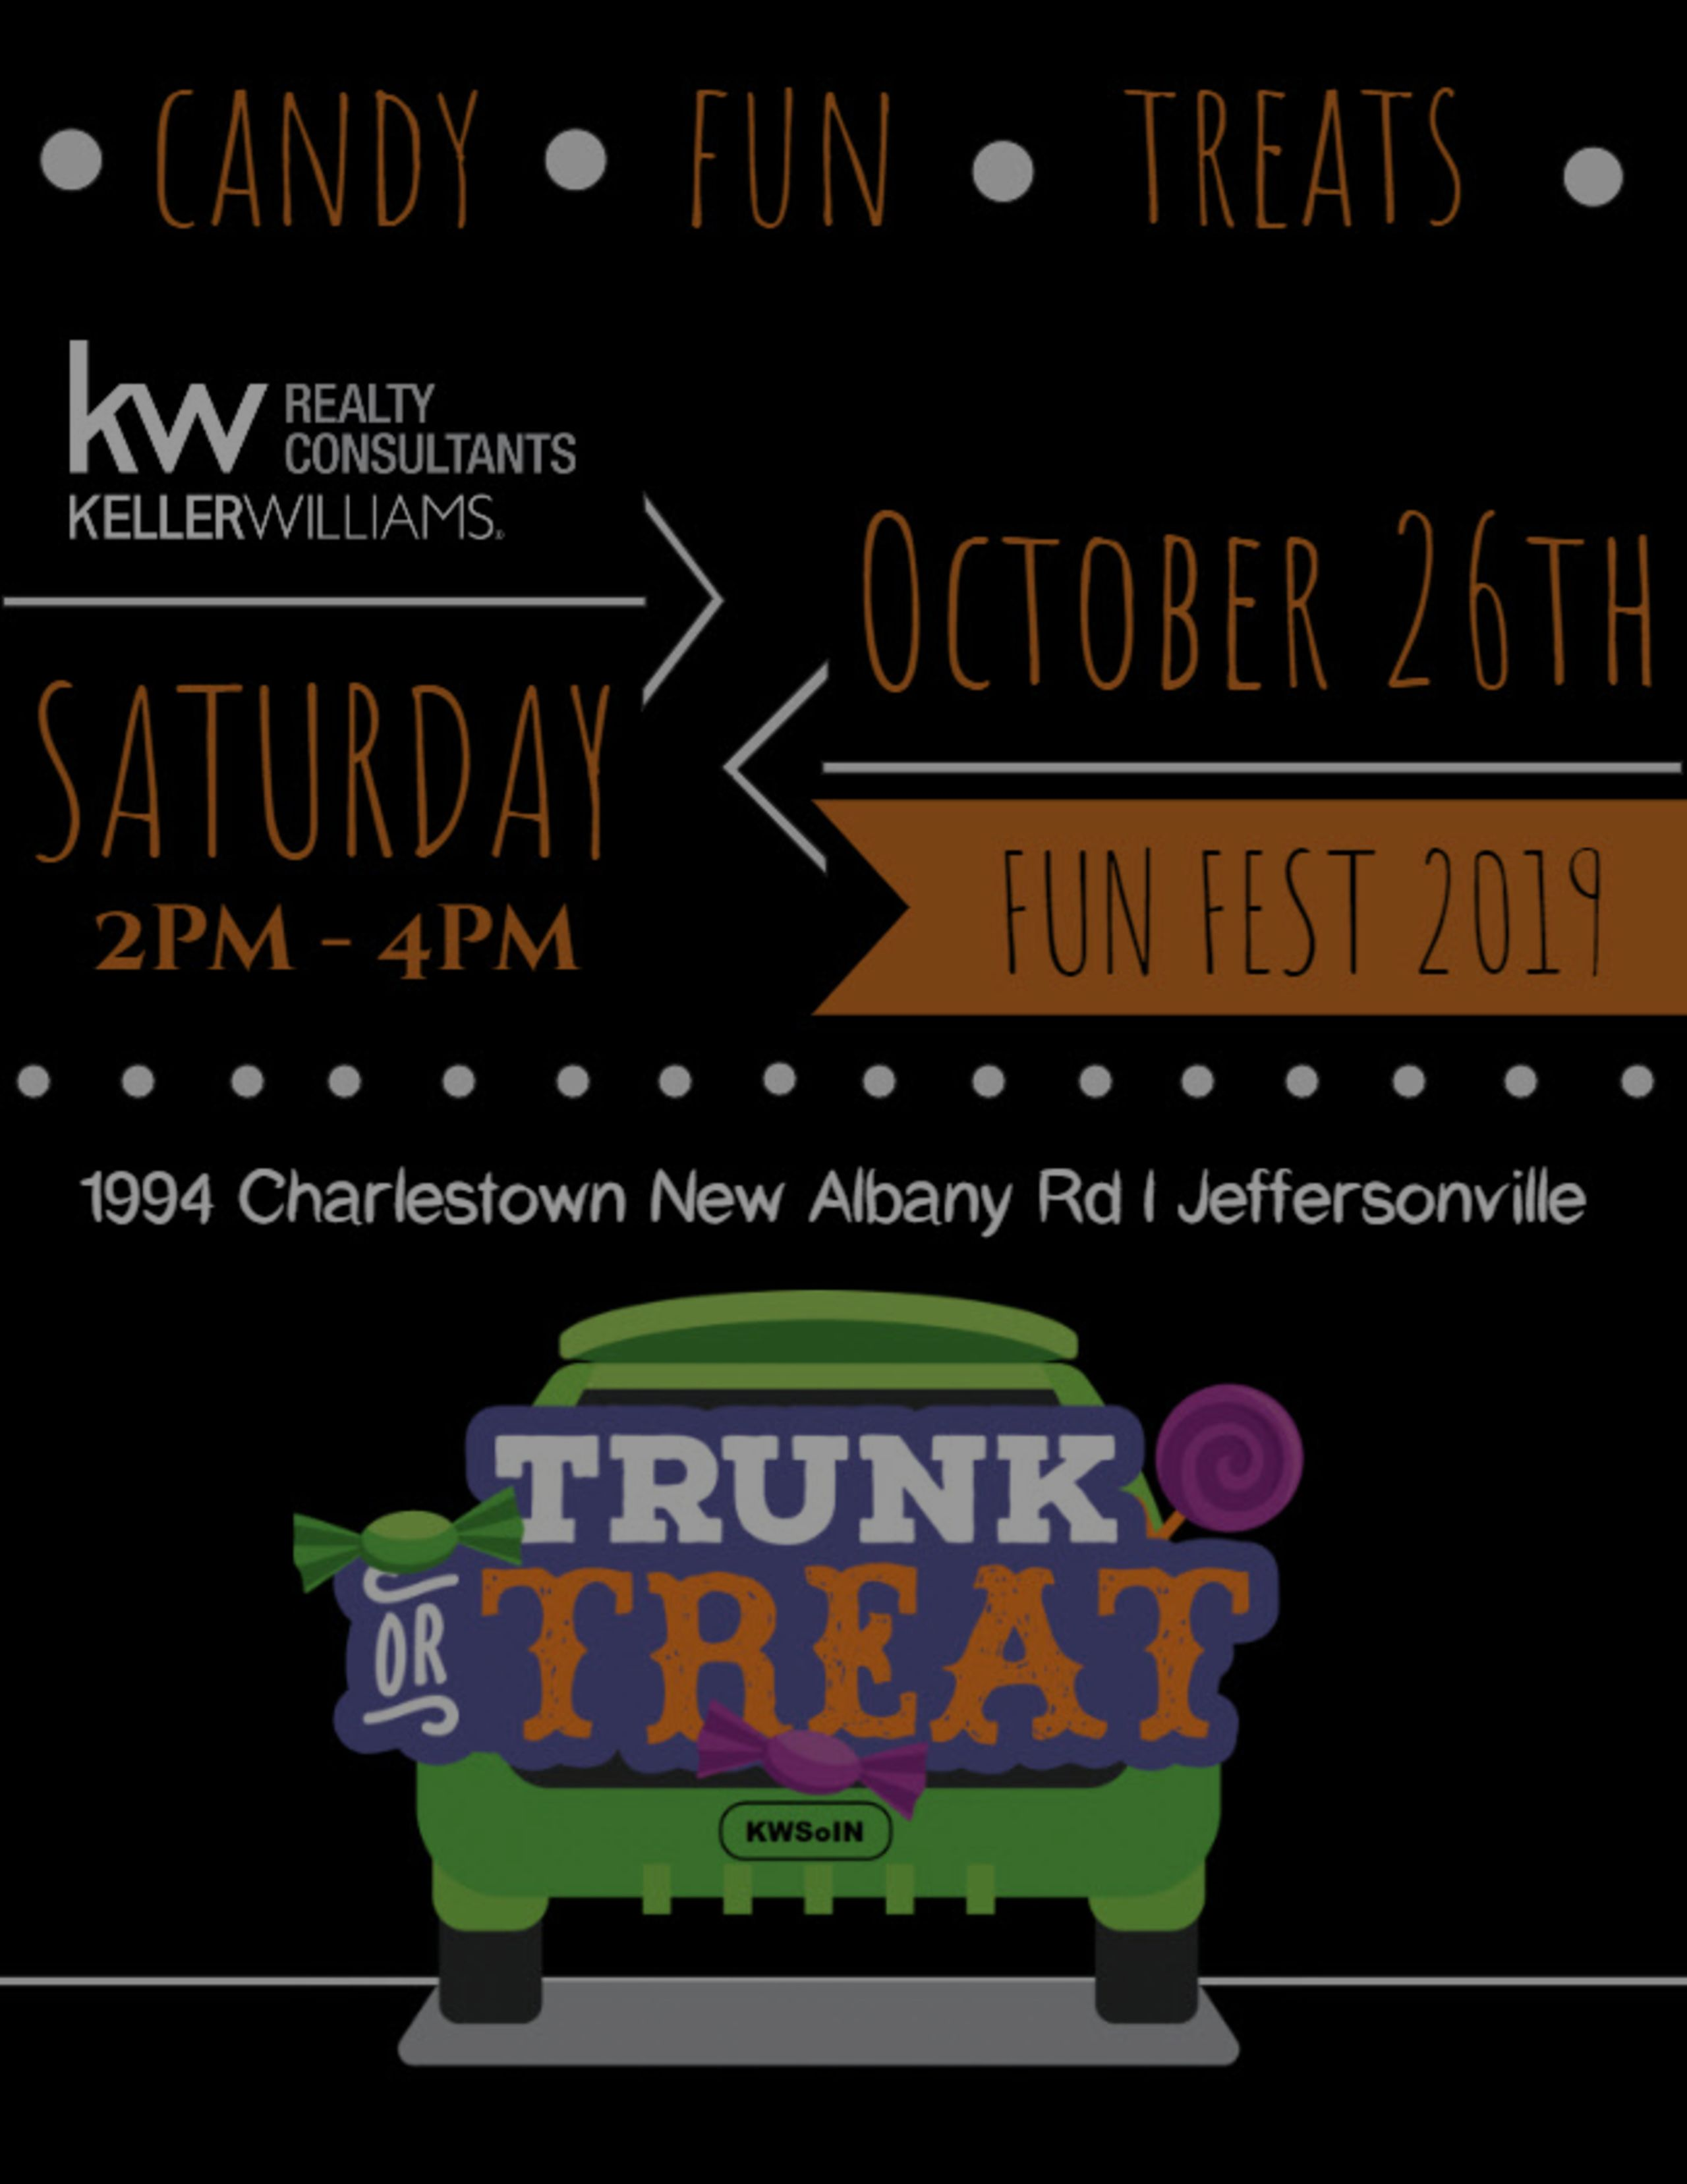 Who's ready to TRUNK or TREAT???